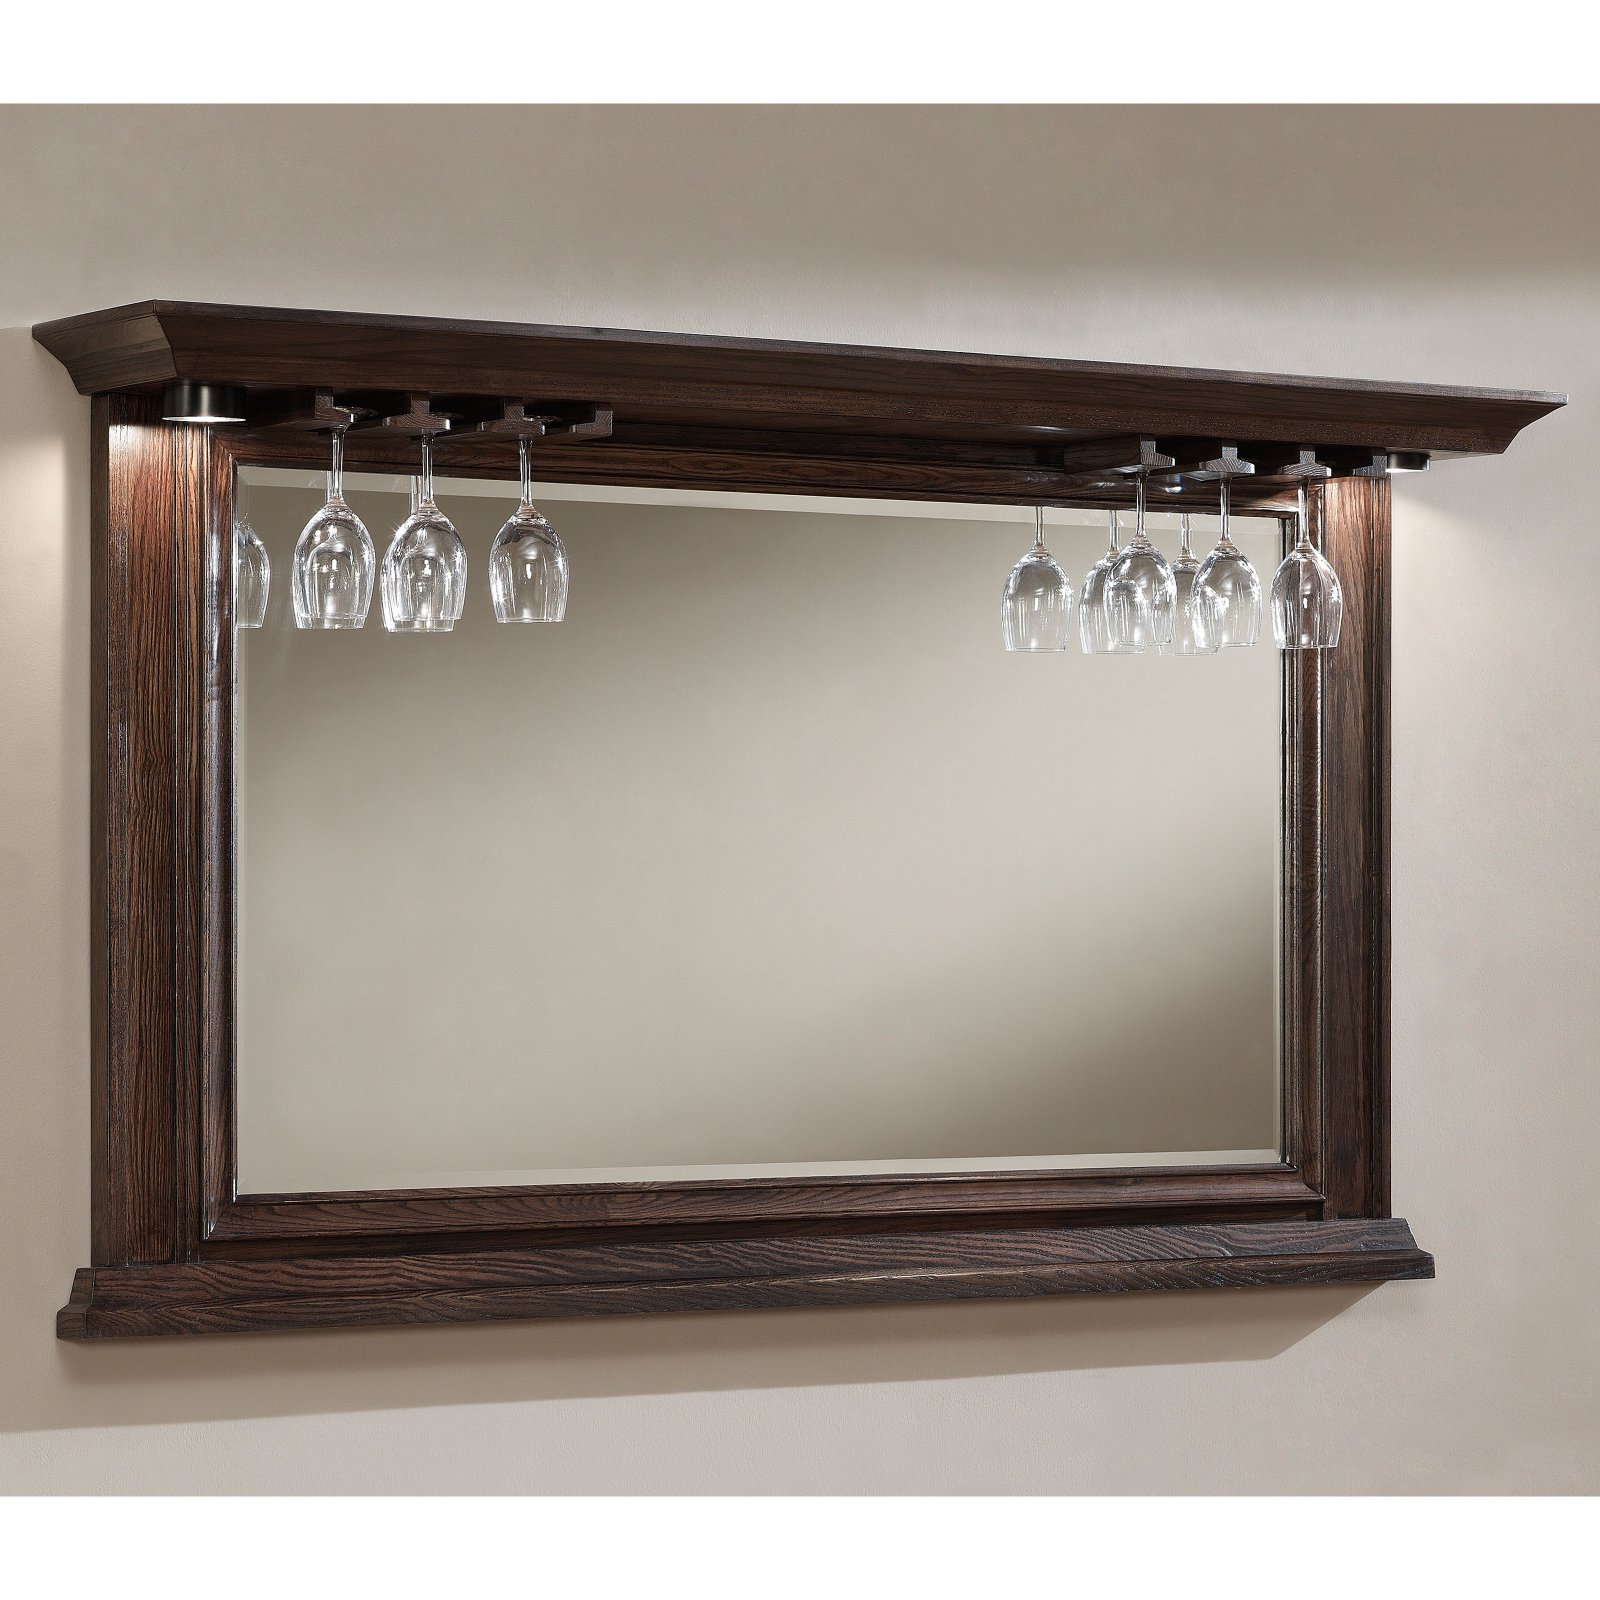 AHB Riviera Back Bar Mirror